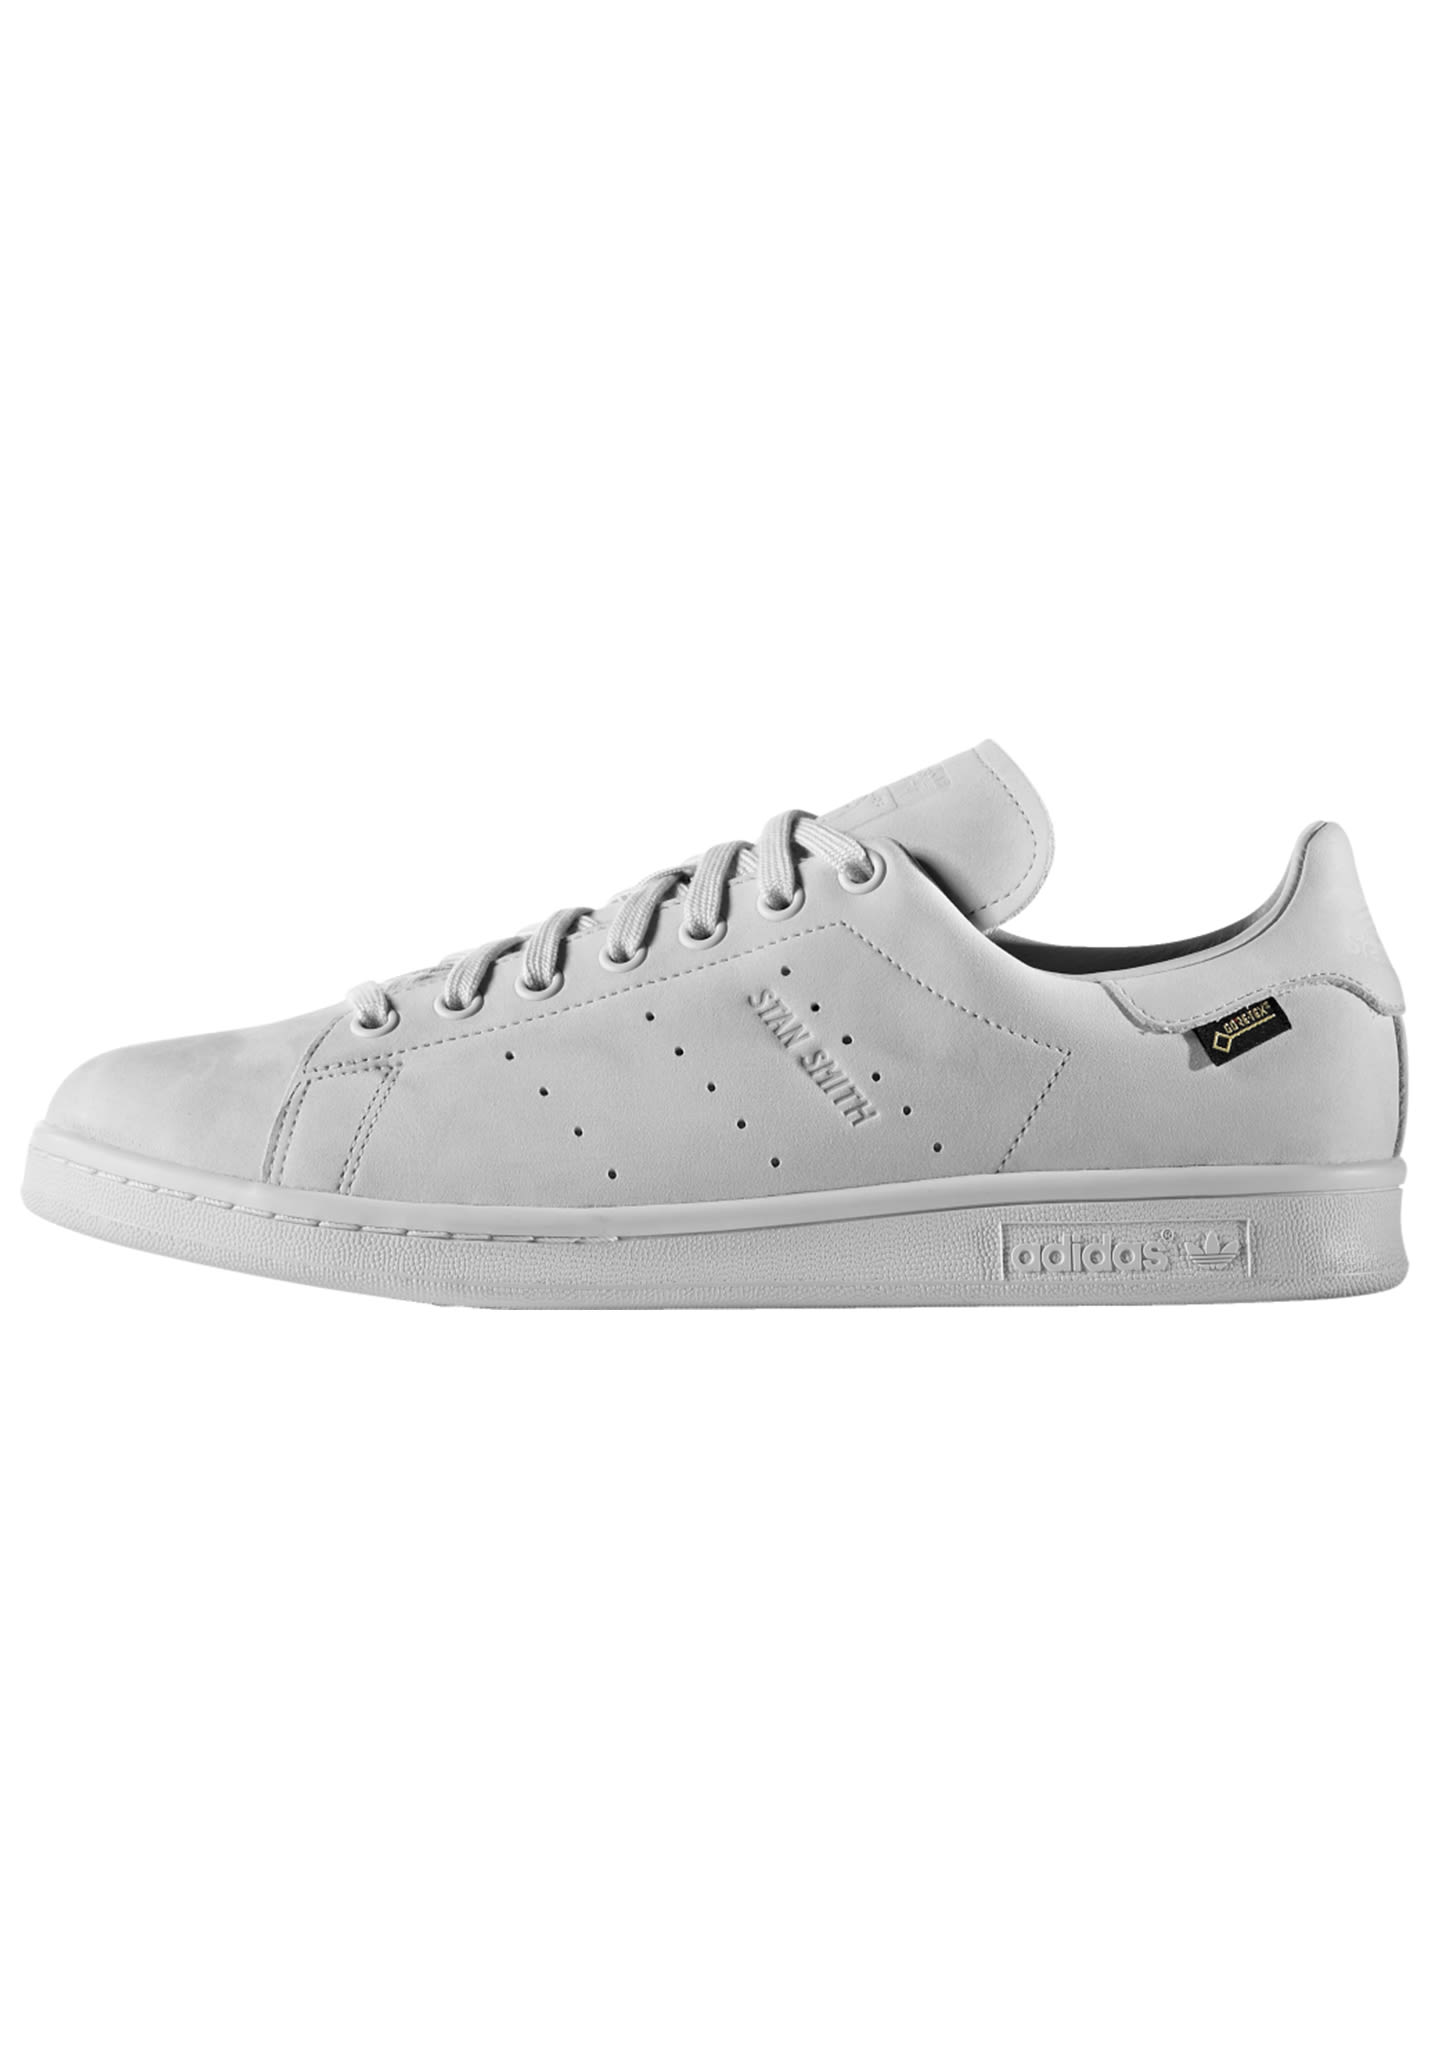 best sneakers 8e971 13b23 ADIDAS ORIGINALS Stan Smith GTX - Sneakers for Men - Grey - Planet Sports